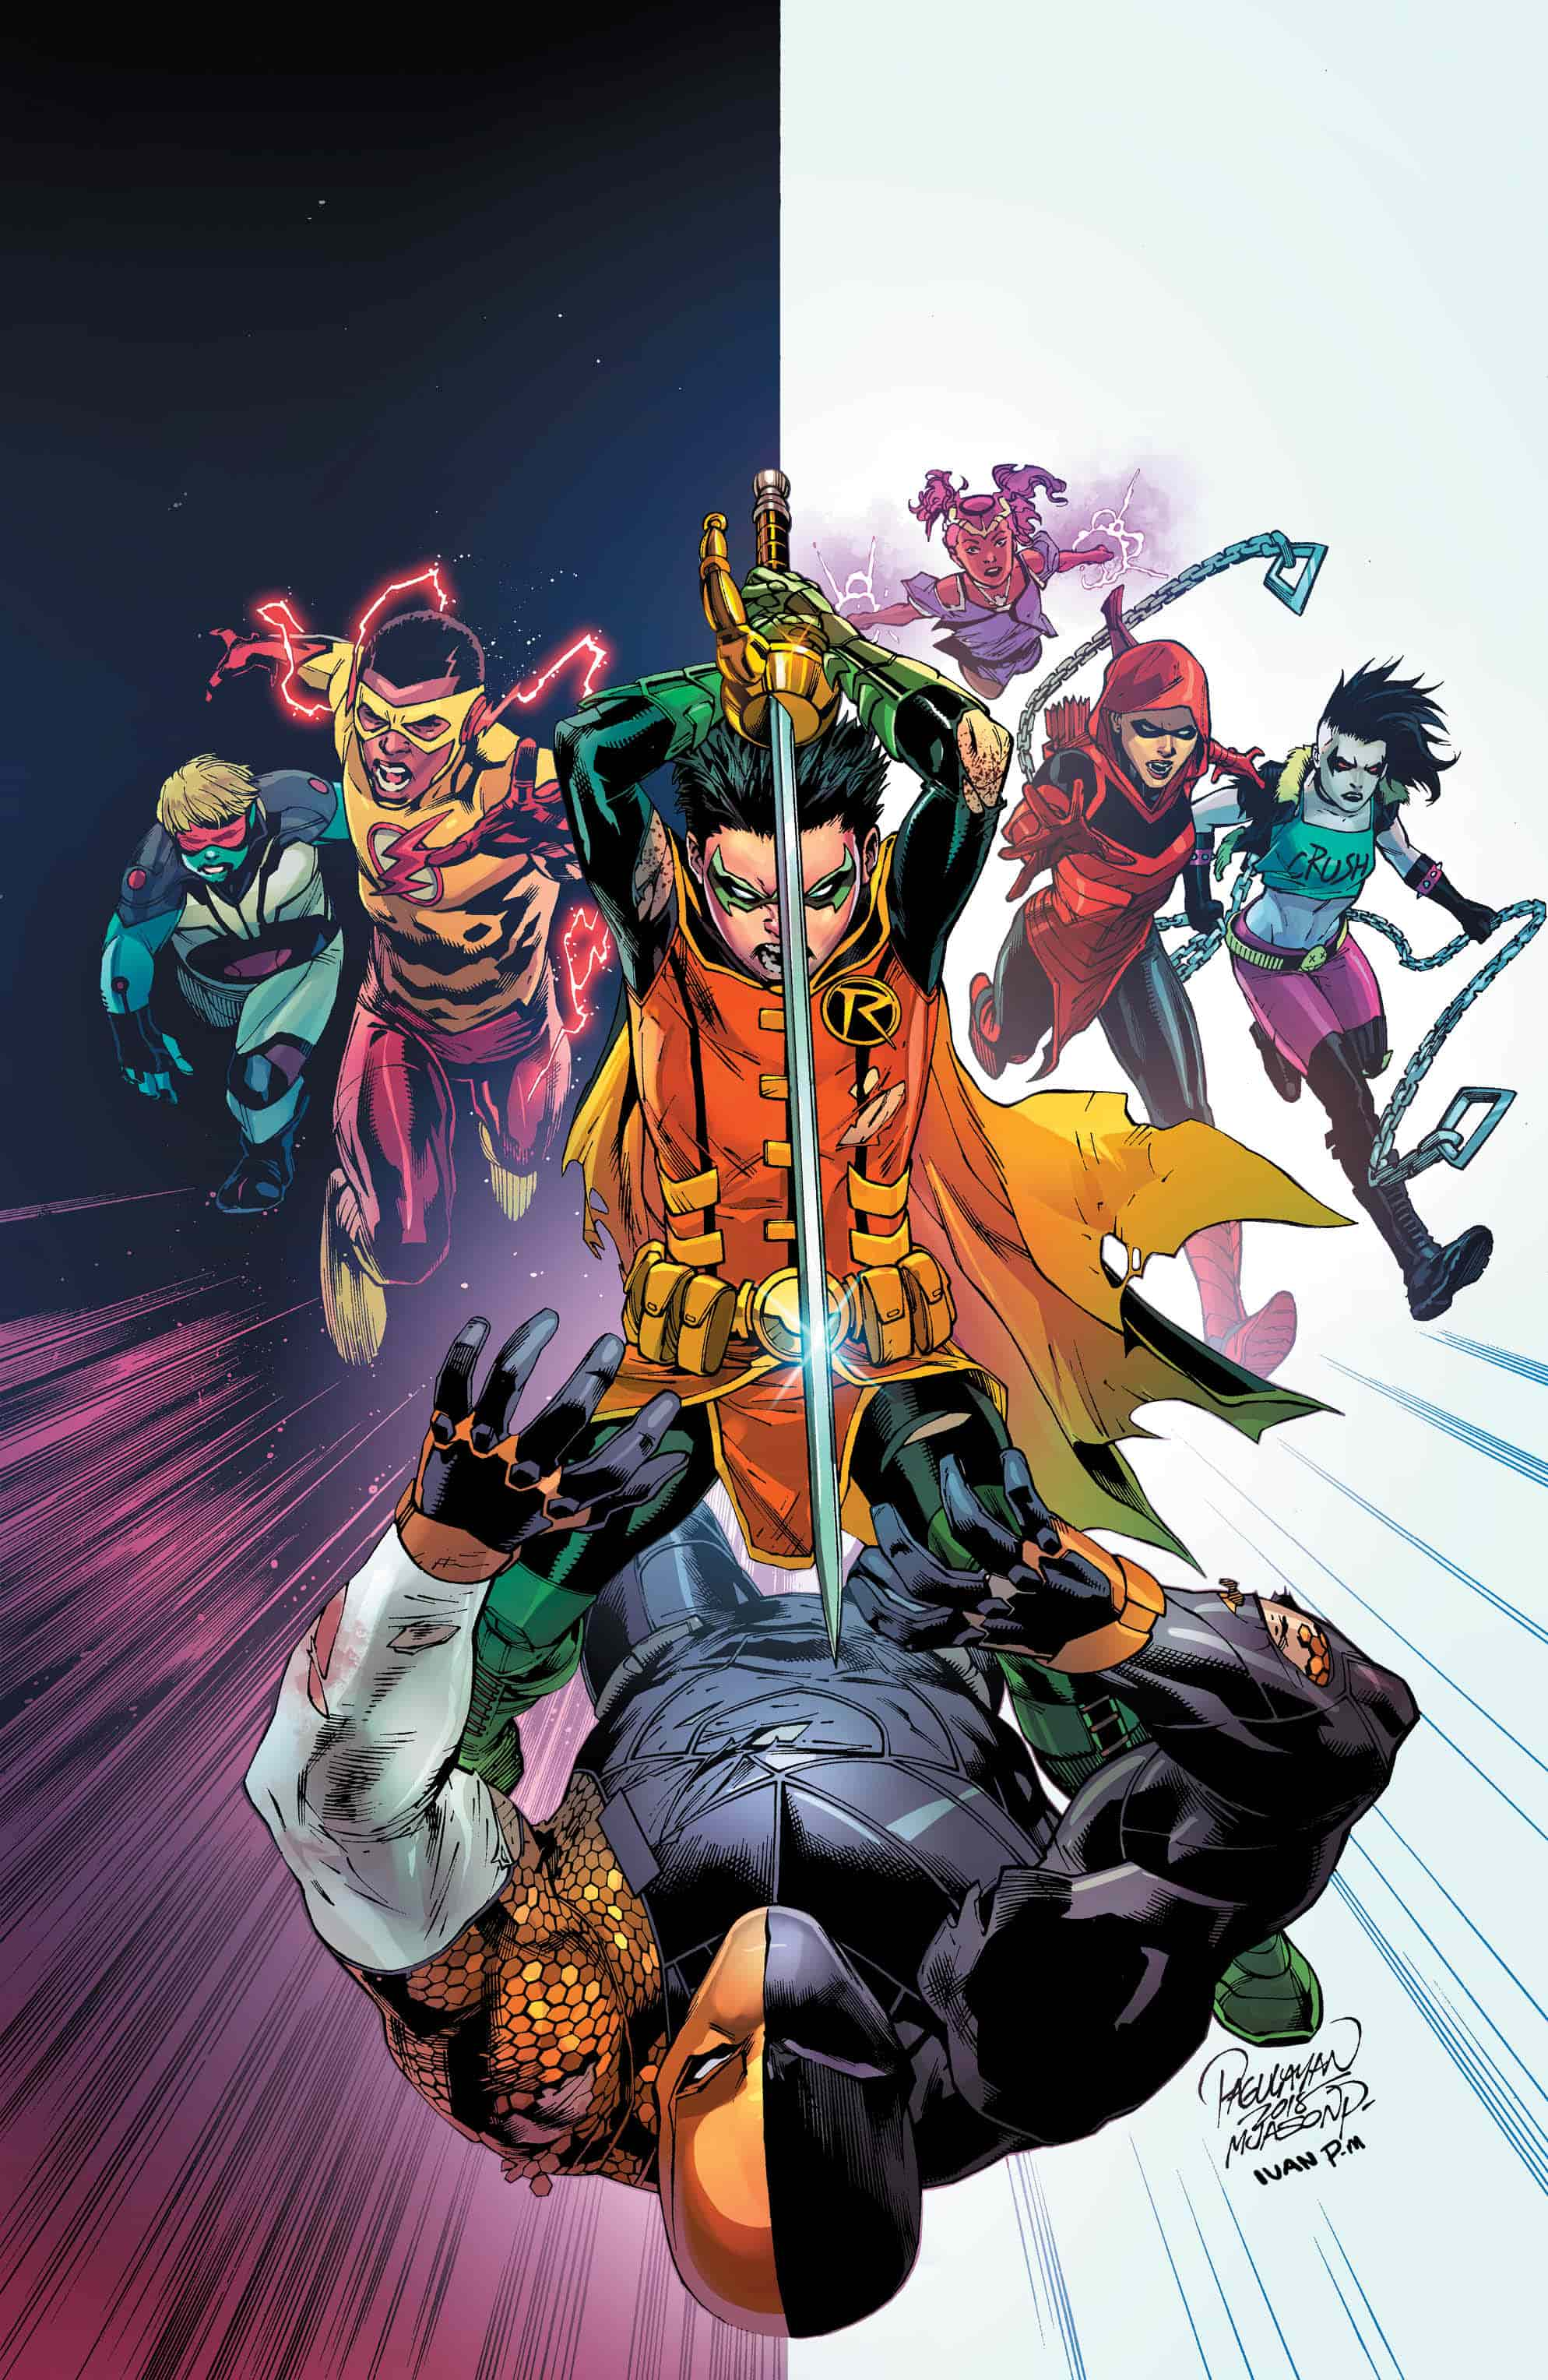 *This review contains spoilers for Deathstroke #43*